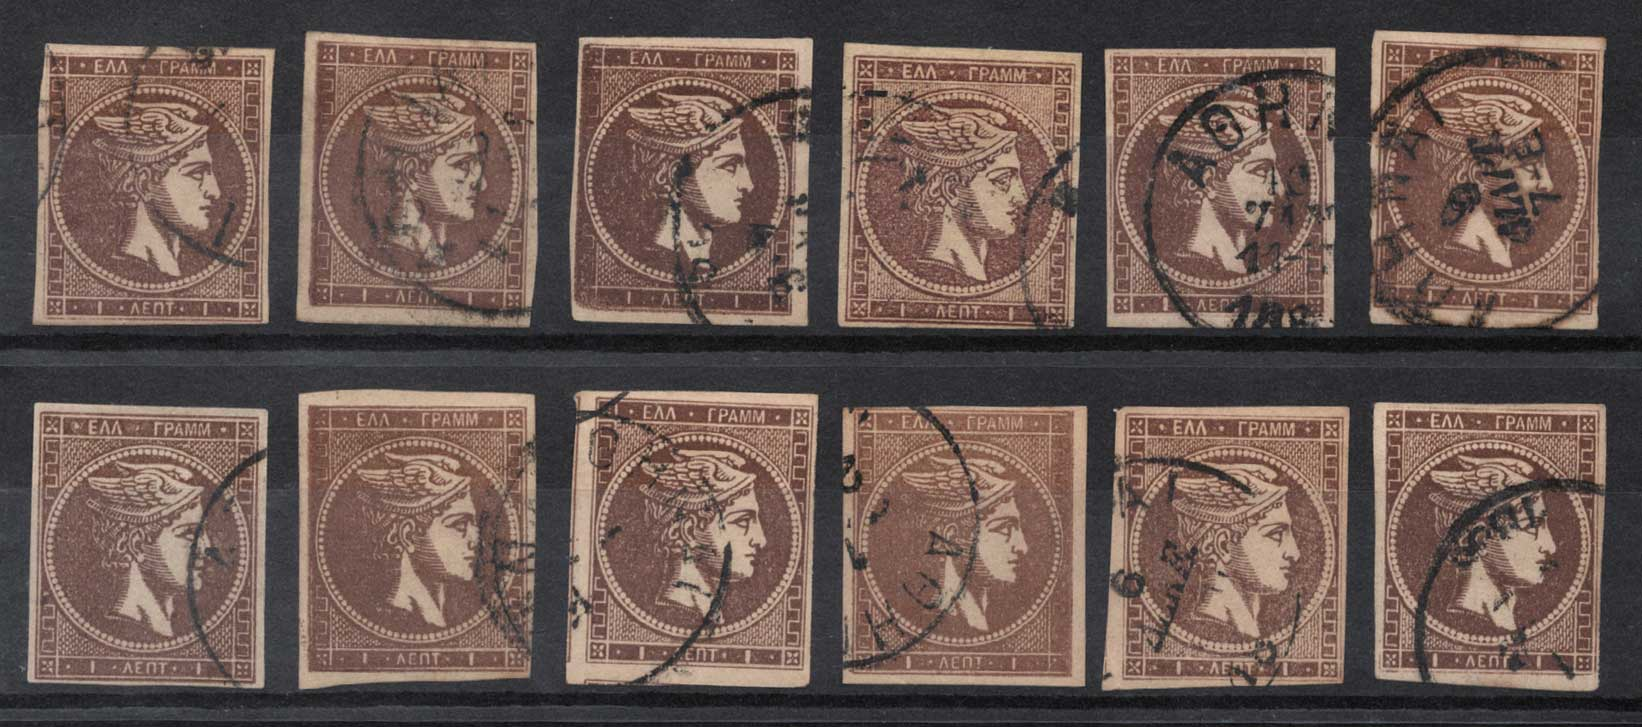 Lot 28 - -  LARGE HERMES HEAD large hermes head -  Athens Auctions Public Auction 81General Stamp Sale